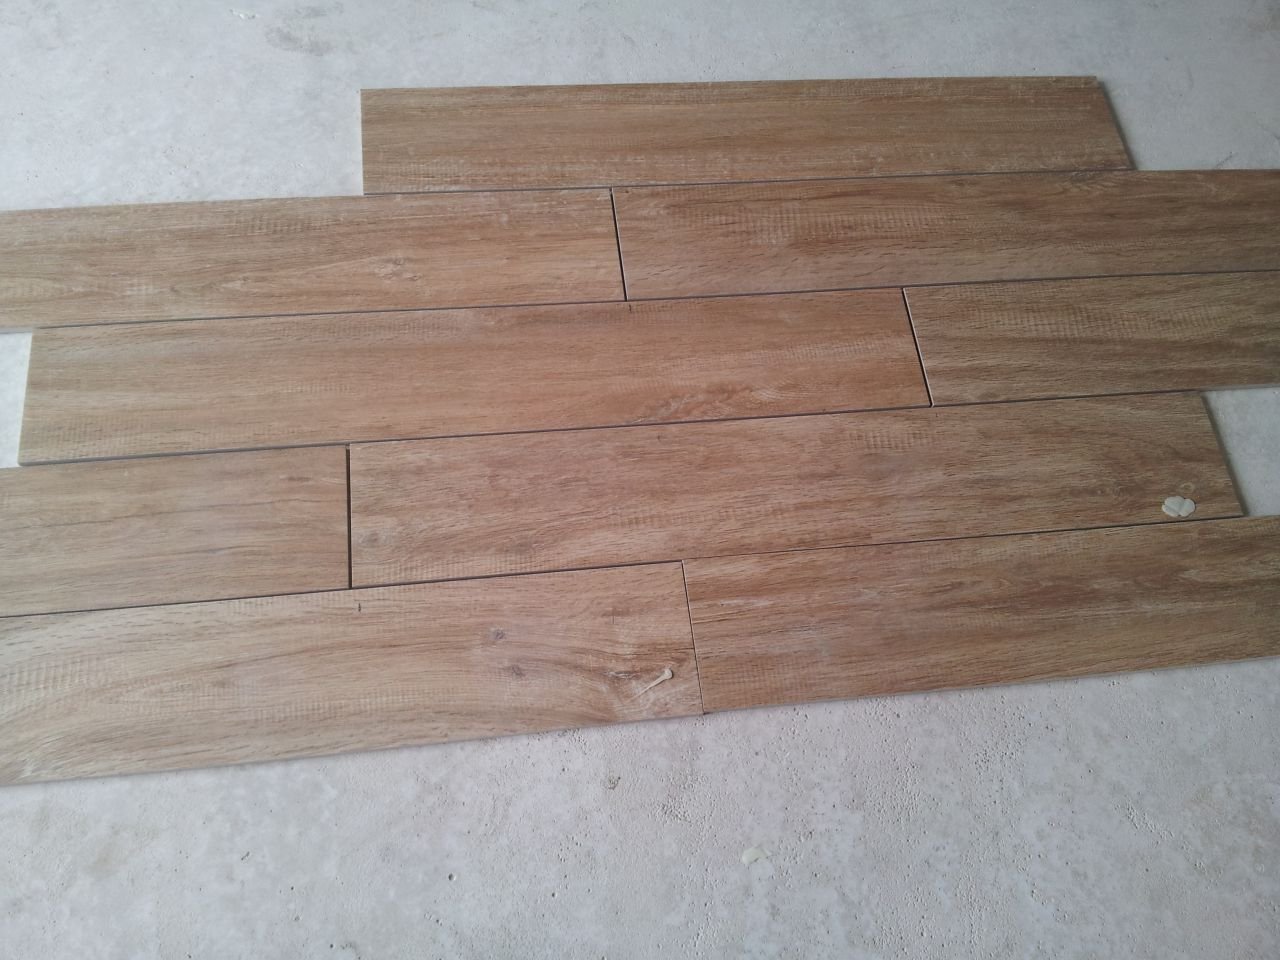 Sens et technique de pose pr carrelage imitation parquet for Pose de parquet stratifie sur carrelage